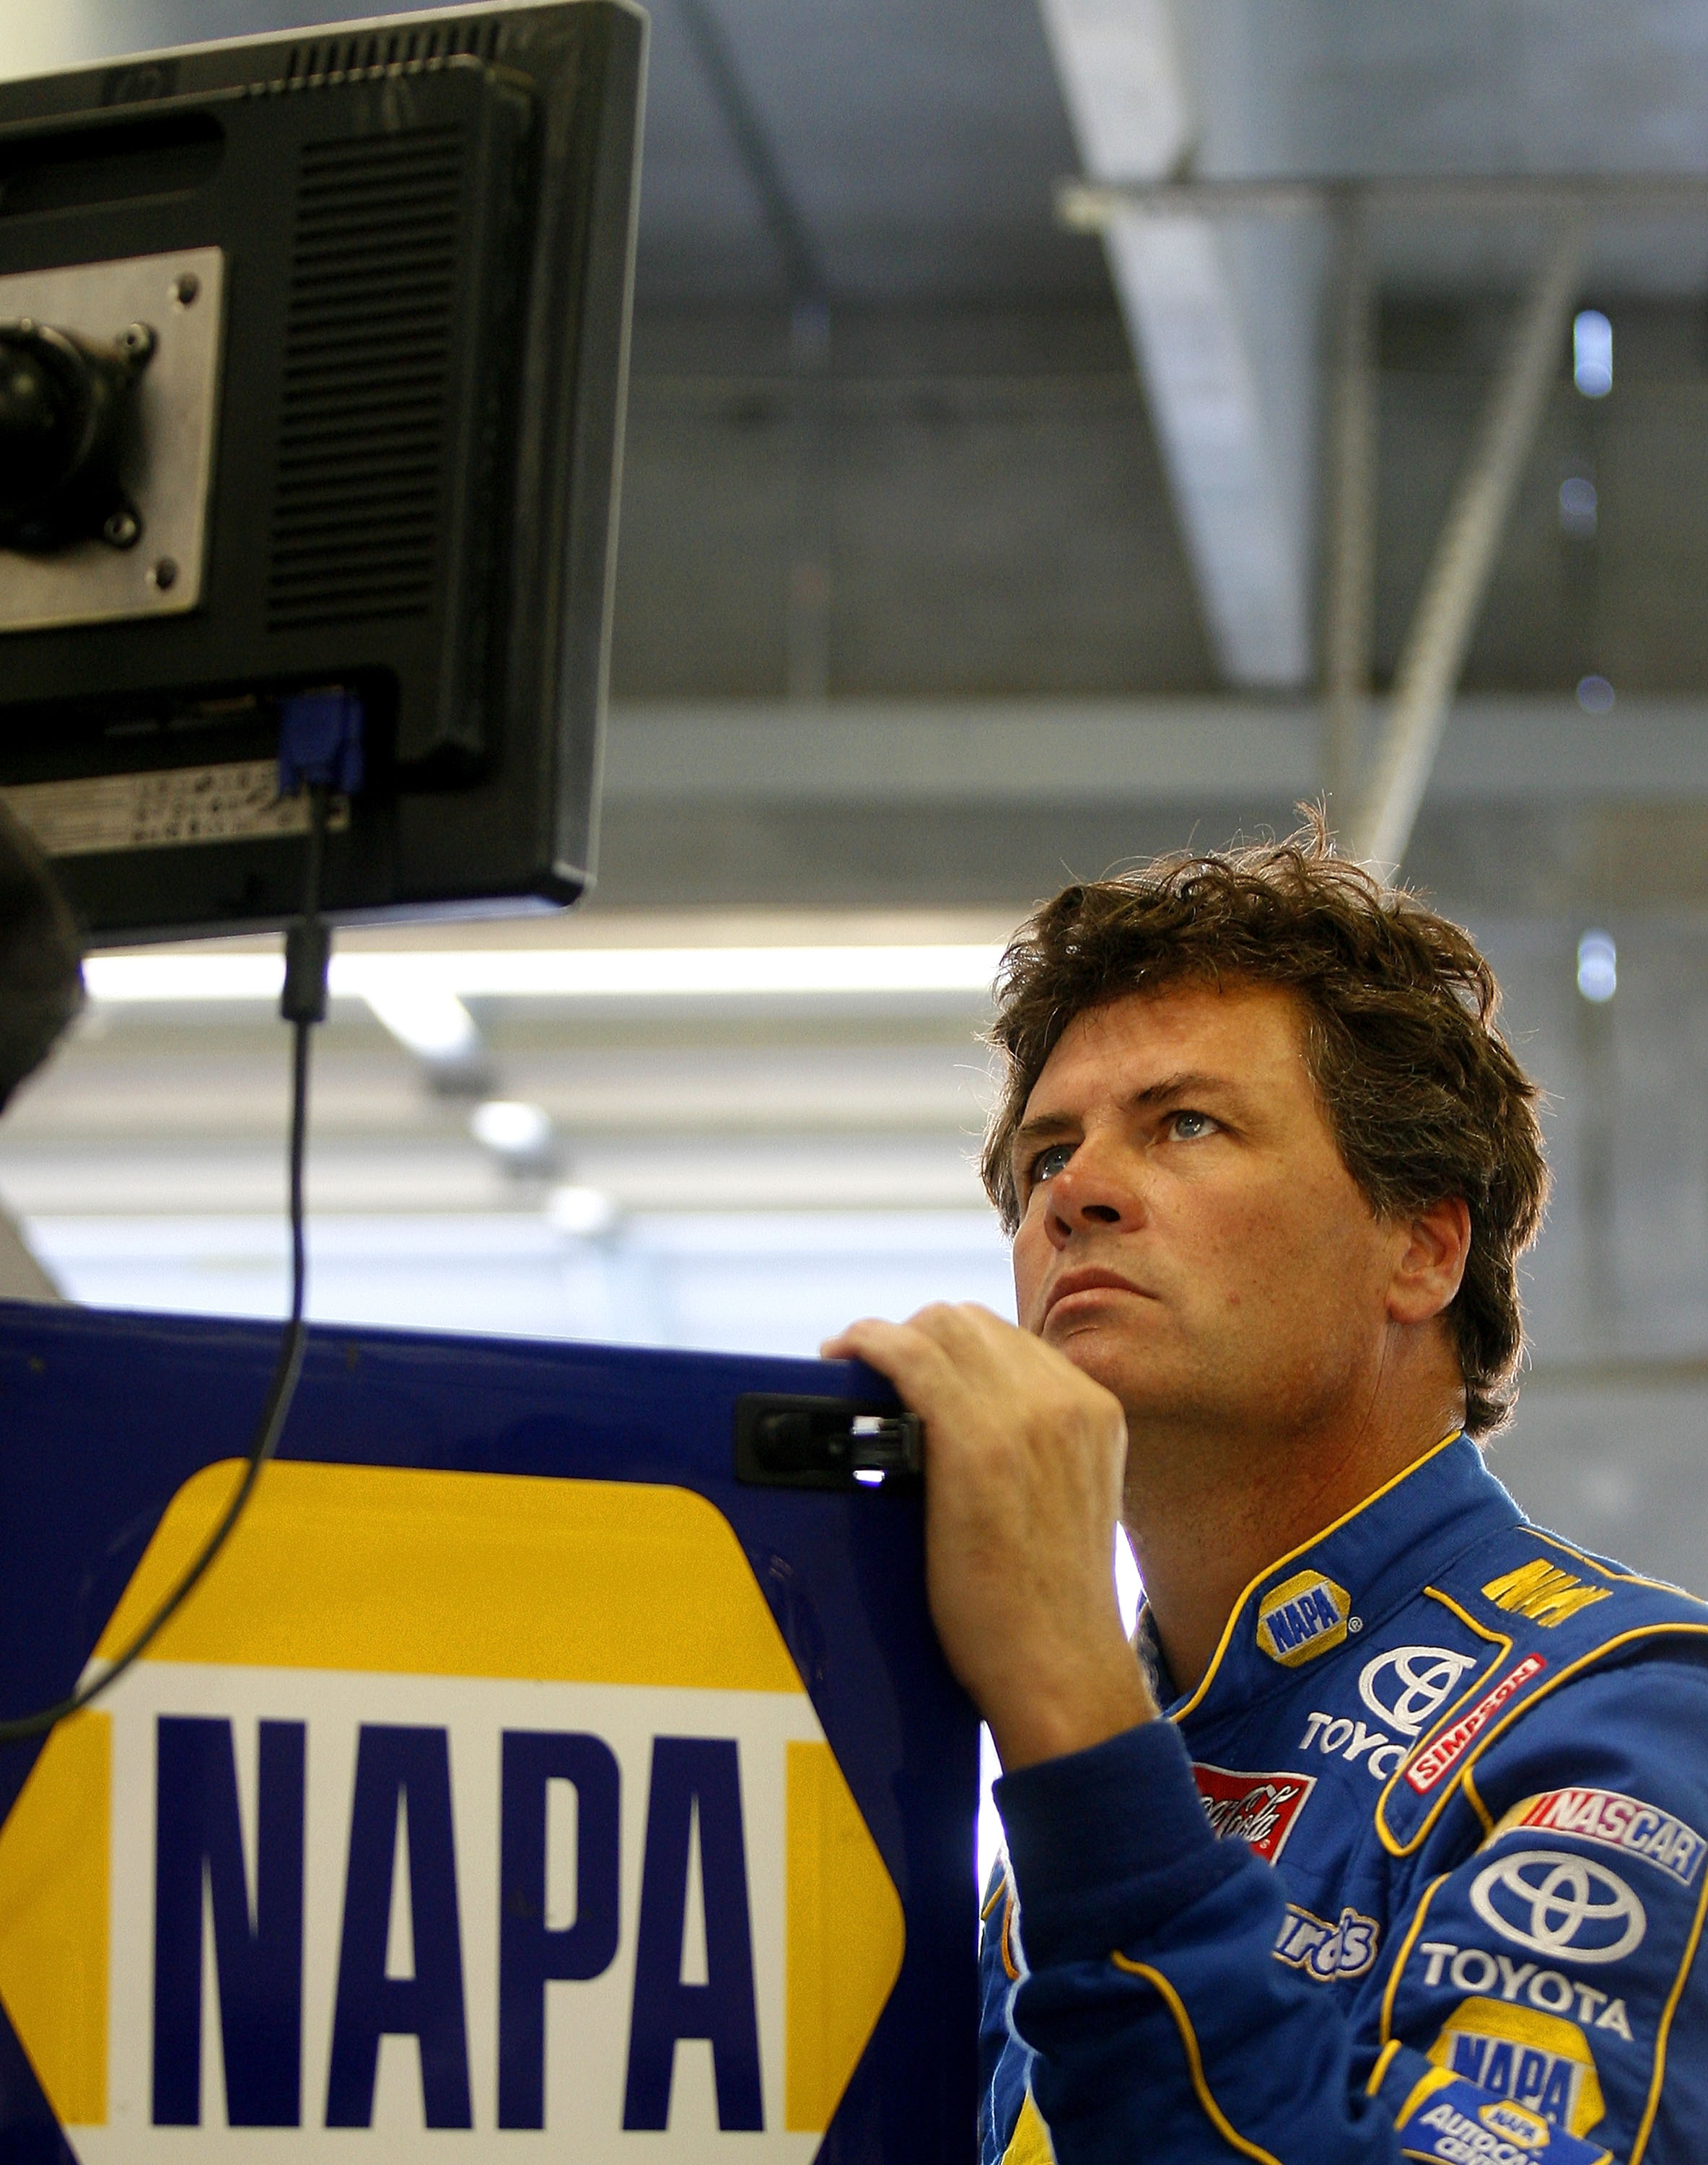 HAMPTON, GA - OCTOBER 25:  Michael Waltrip, driver of the #55 NAPA Auto Parts Toyota, views the scoring monitor during practice for the NASCAR Sprint Cup Series Pep Boys Auto 500 at Atlanta Motor Speedway on October 25, 2008 in Hampton, Georgia.  (Photo b